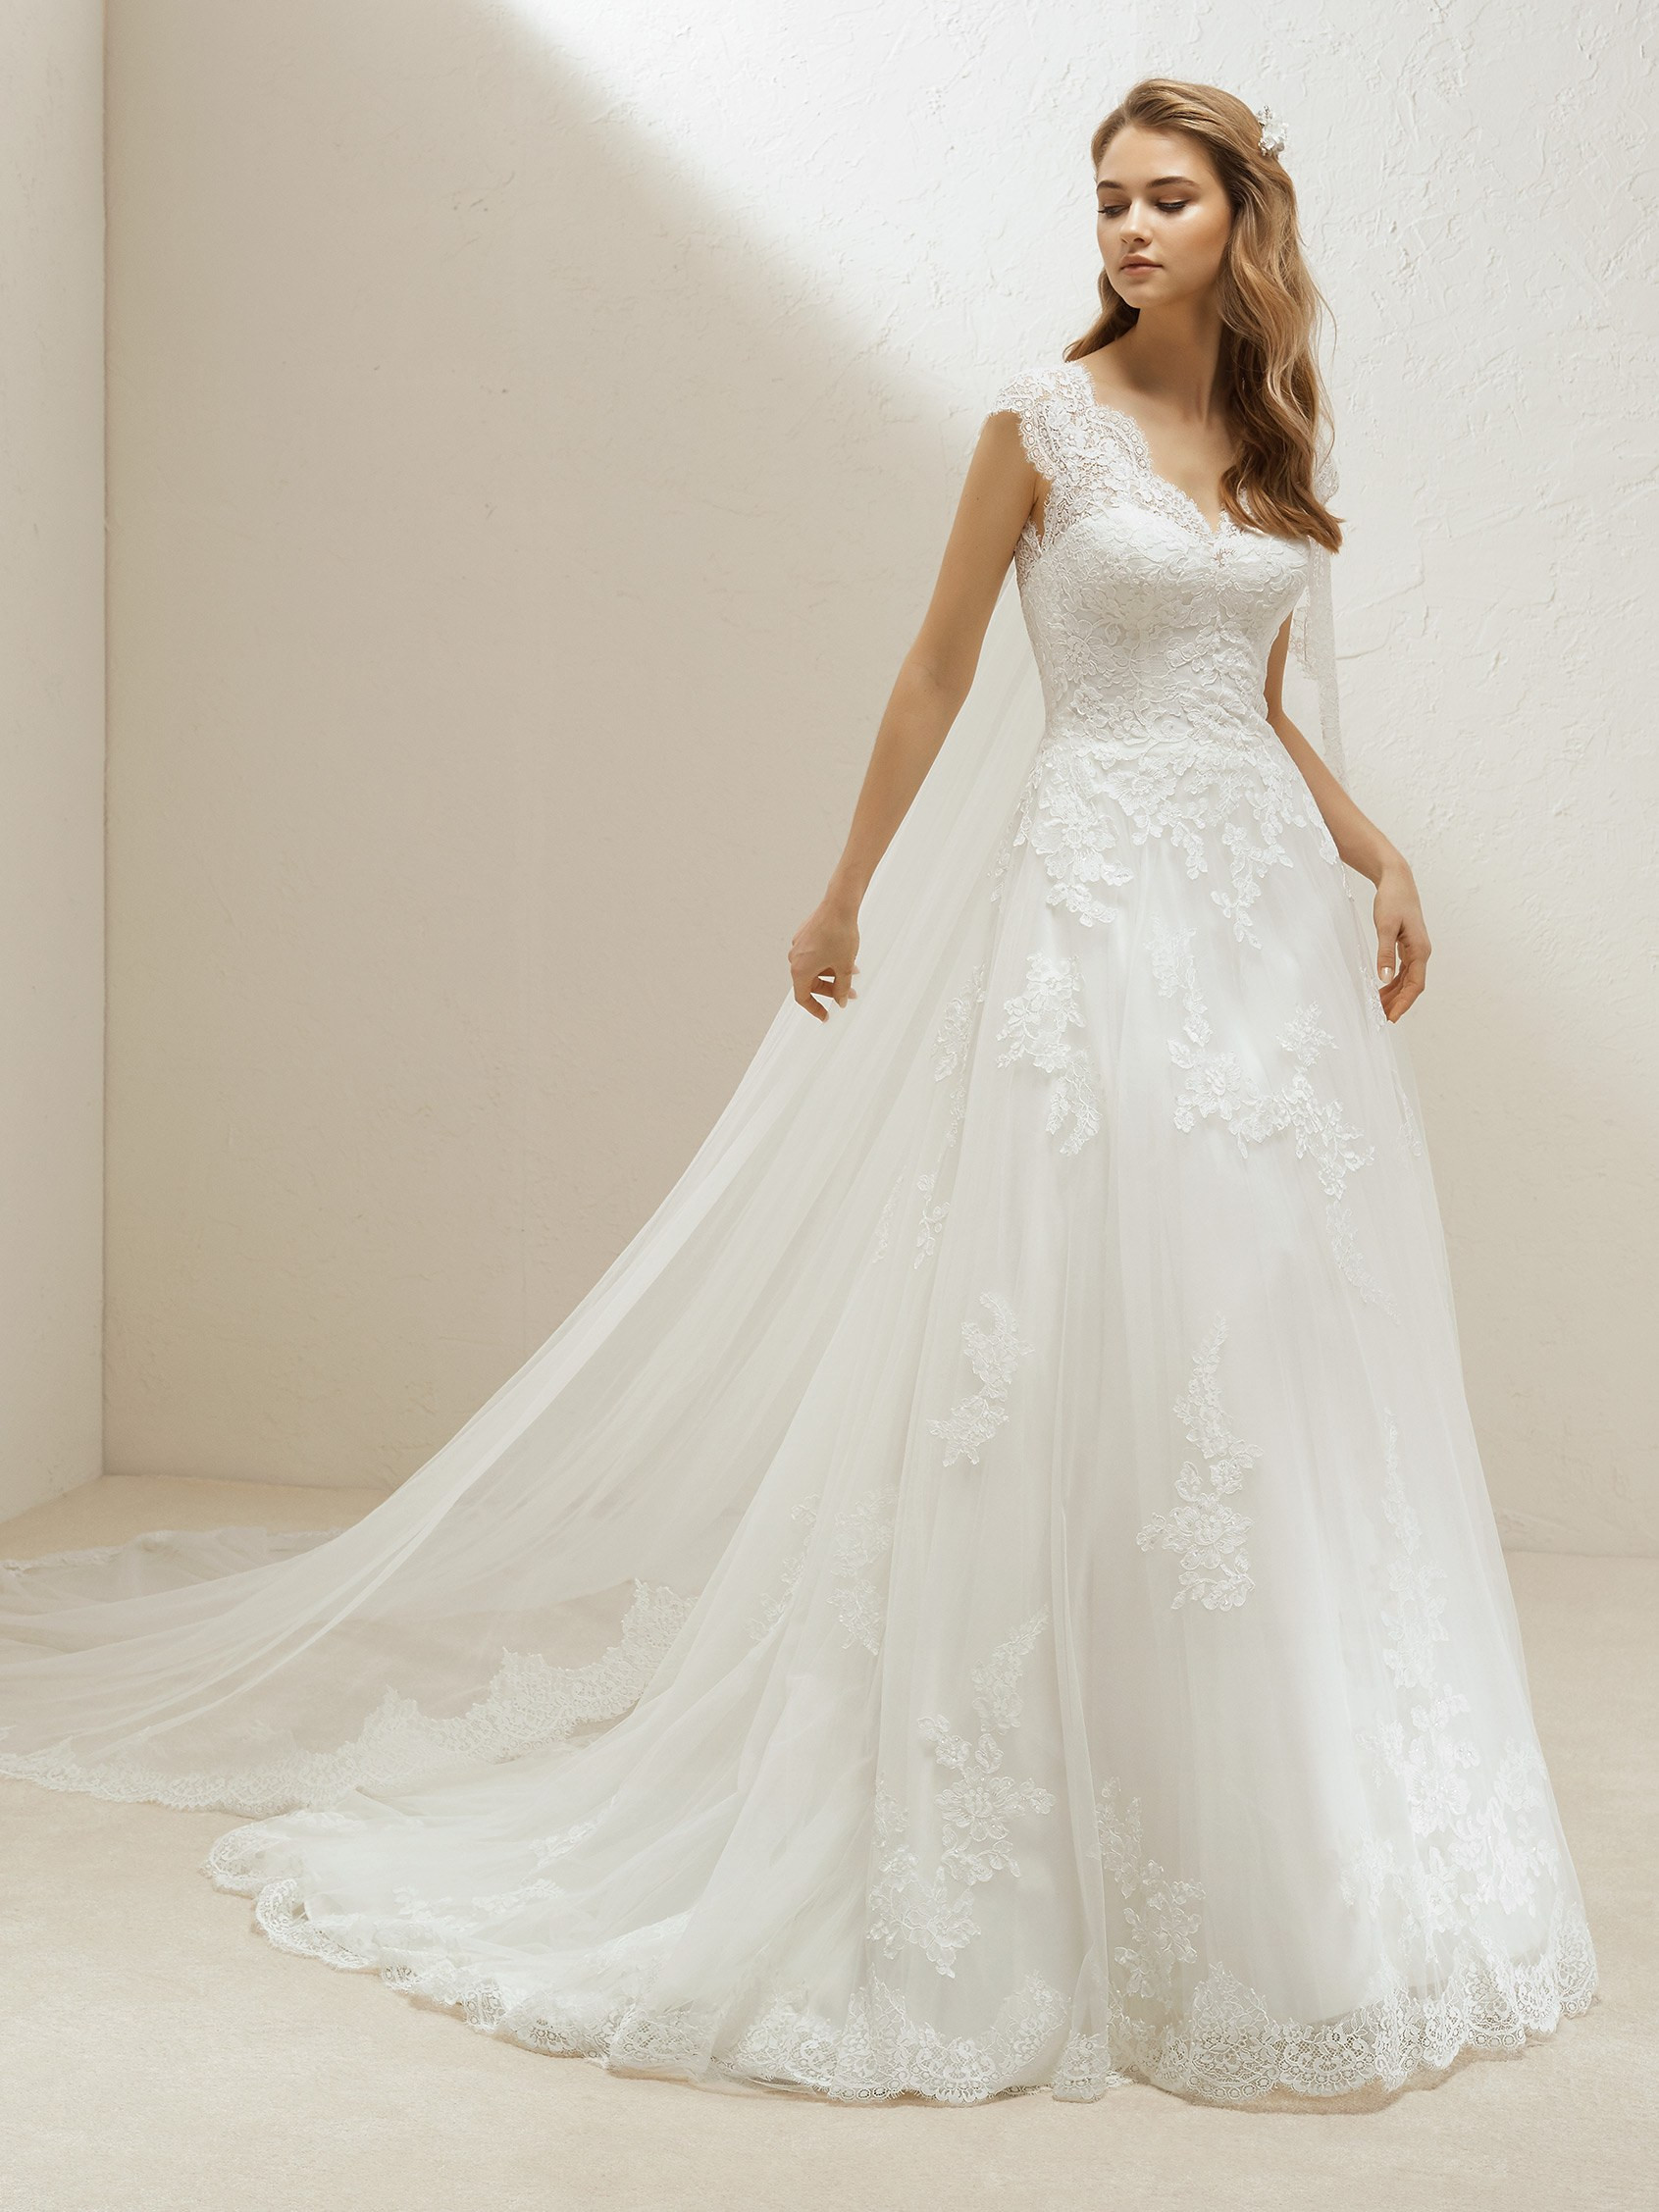 Lovely Princess Wedding Dress With Lace And Long Train Pronovias